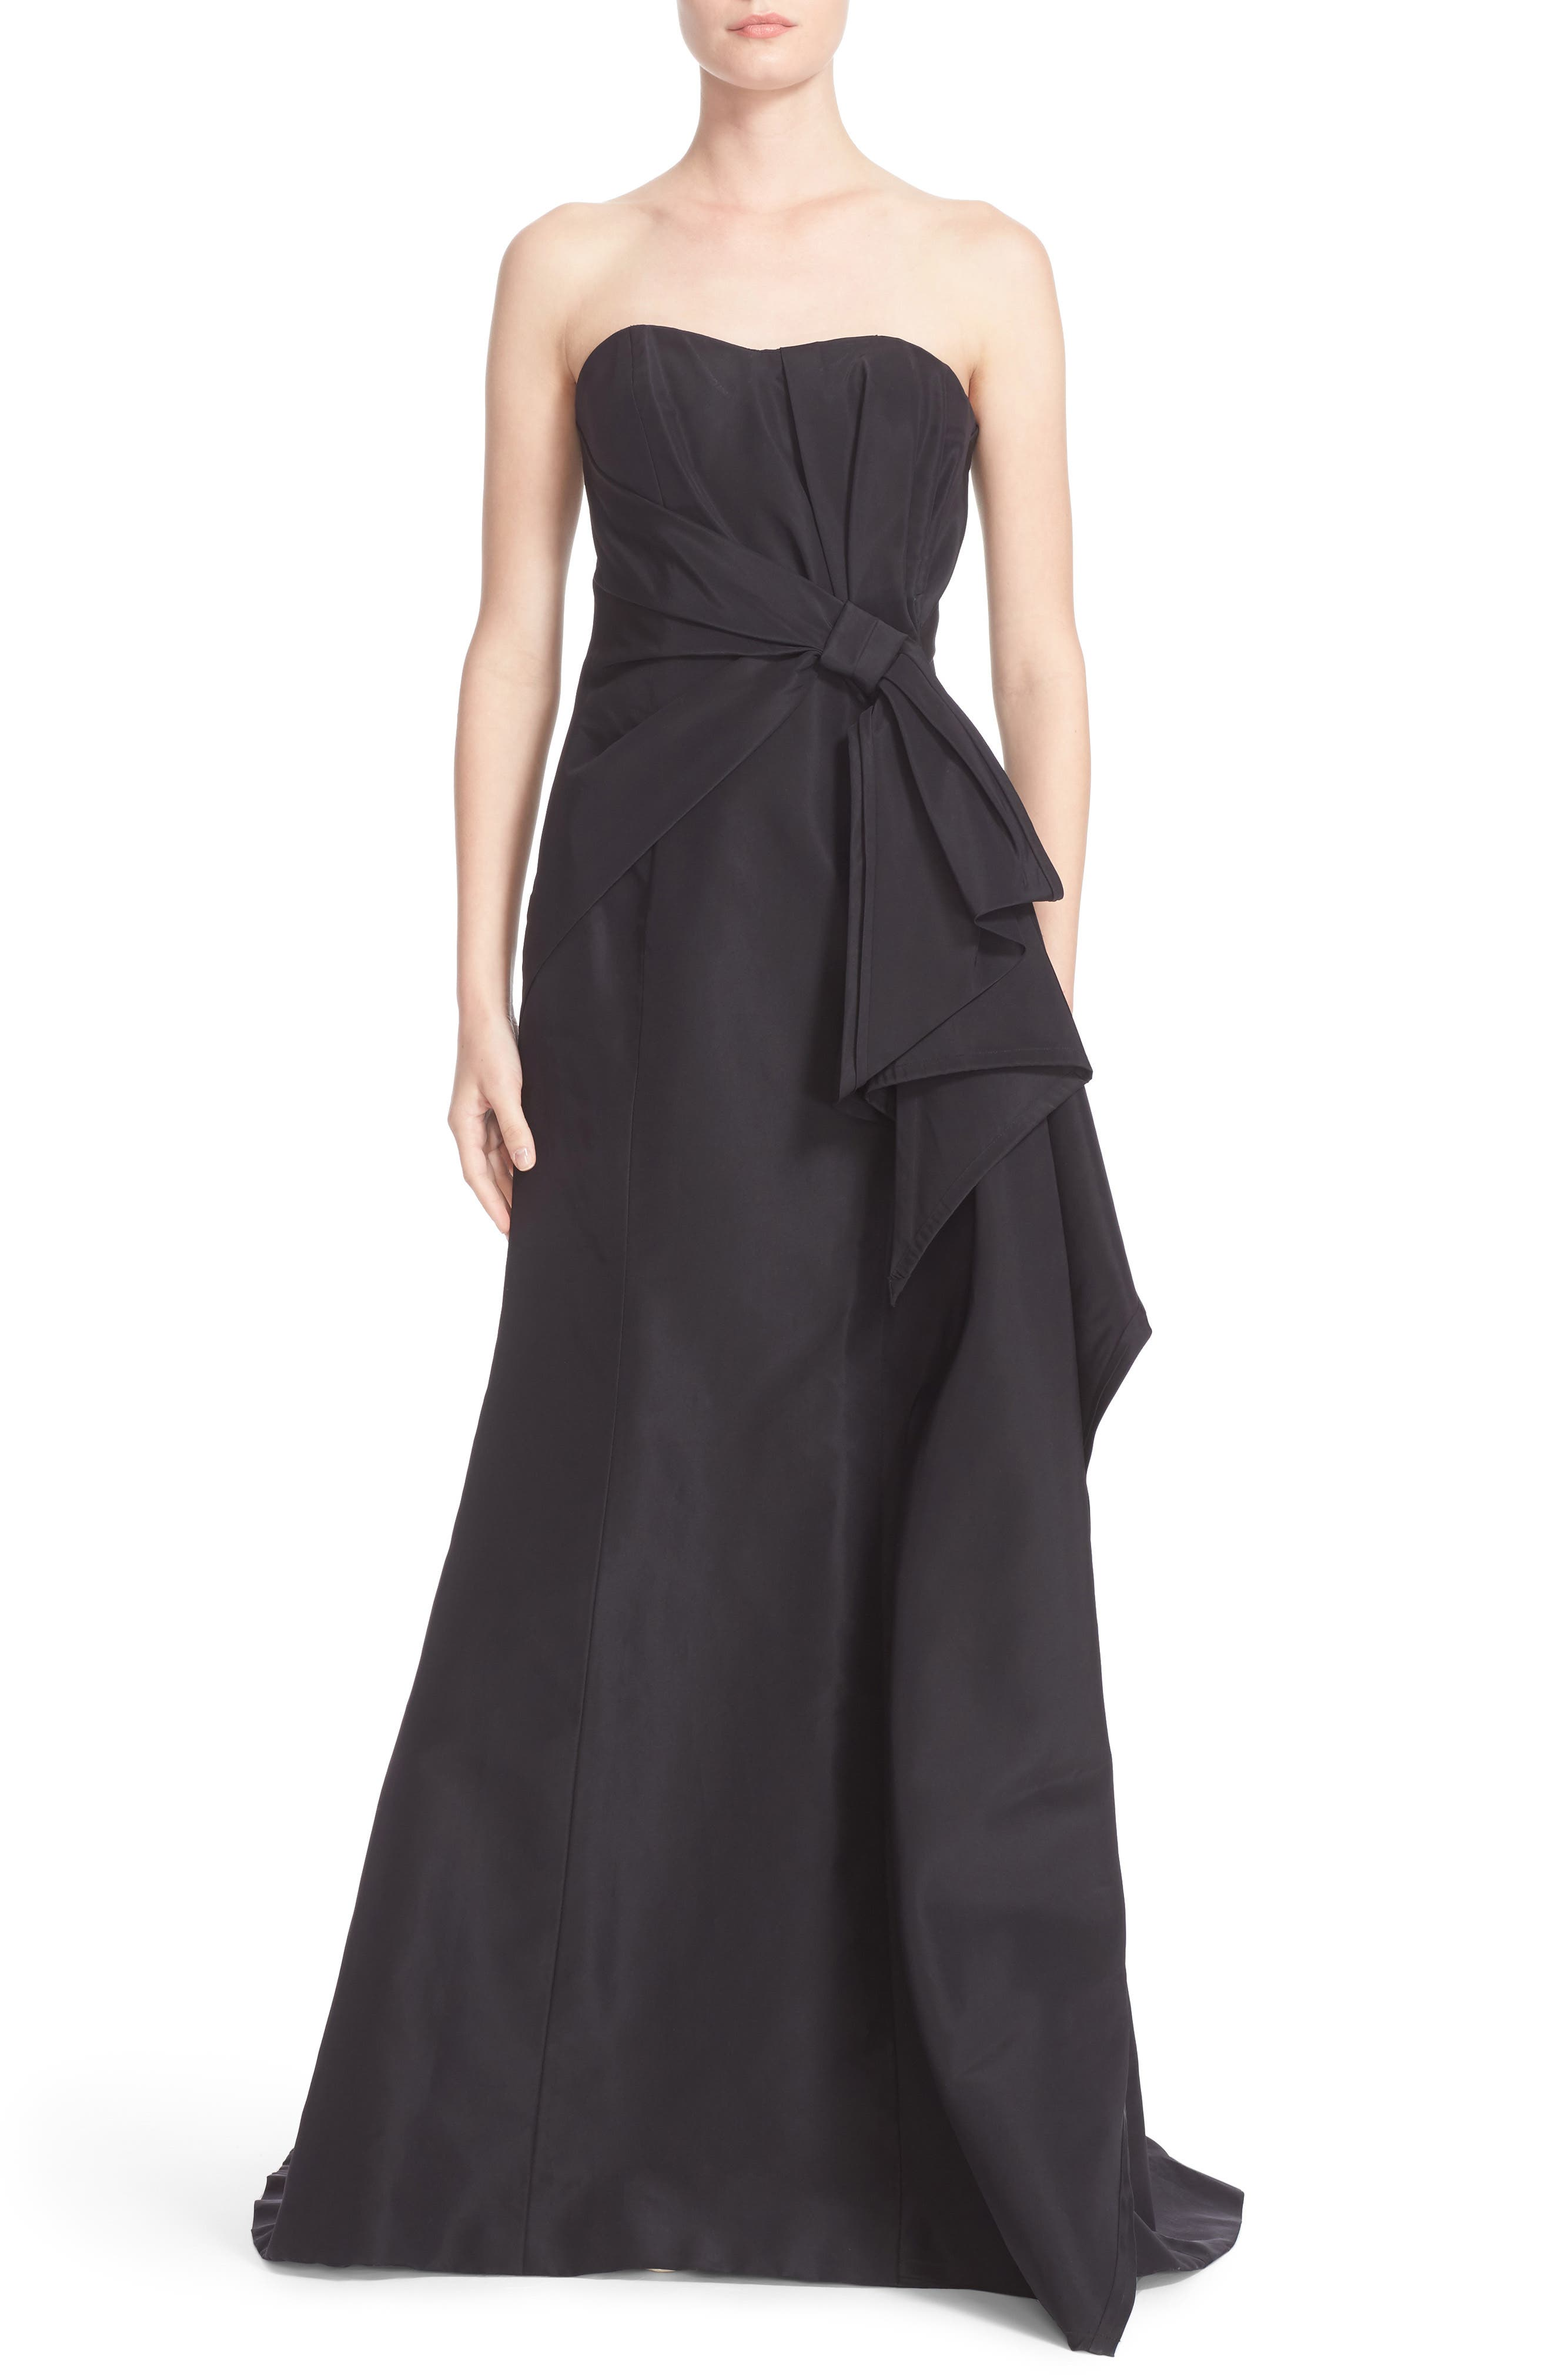 Main Image - Carolina Herrera Bow Detail Strapless Silk Faille Gown (Nordstrom Exclusive)